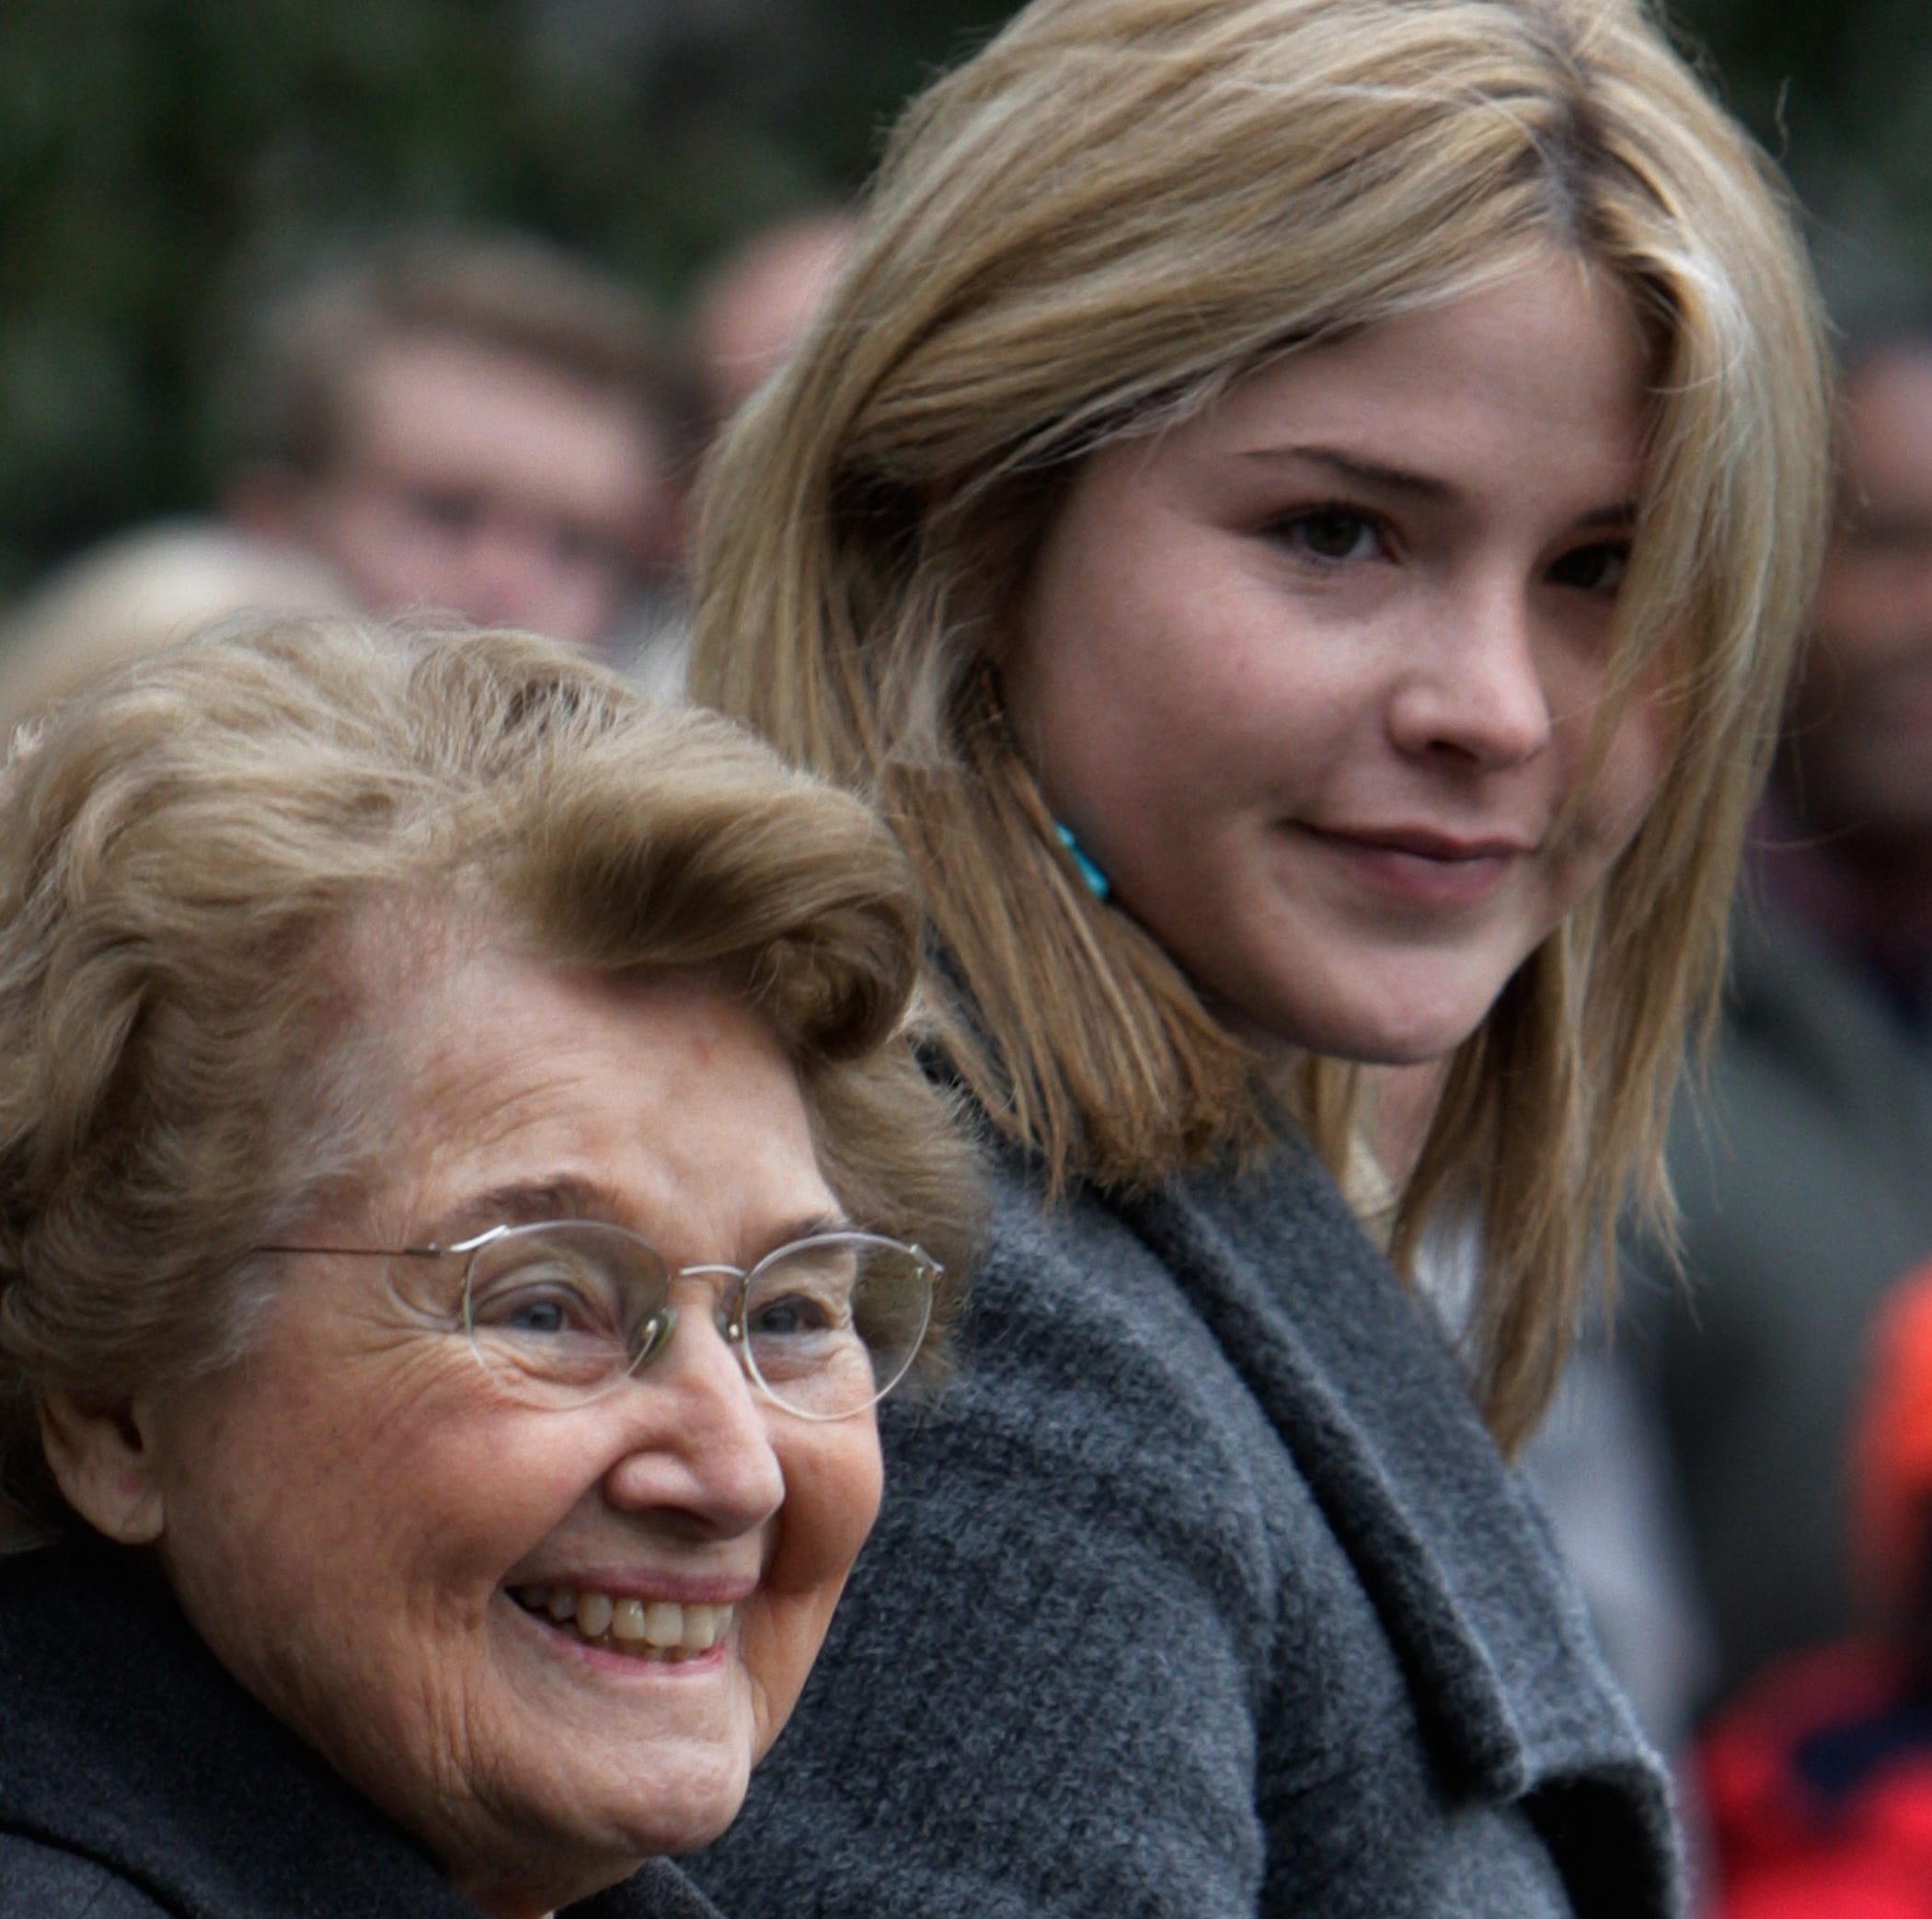 President Bush's daughter Jenna Bush, right, walks with her grandmother Jenna Welch, Friday, Dec. 21, 2007, as they depart the White House with the president for a trip to Camp David, Md.